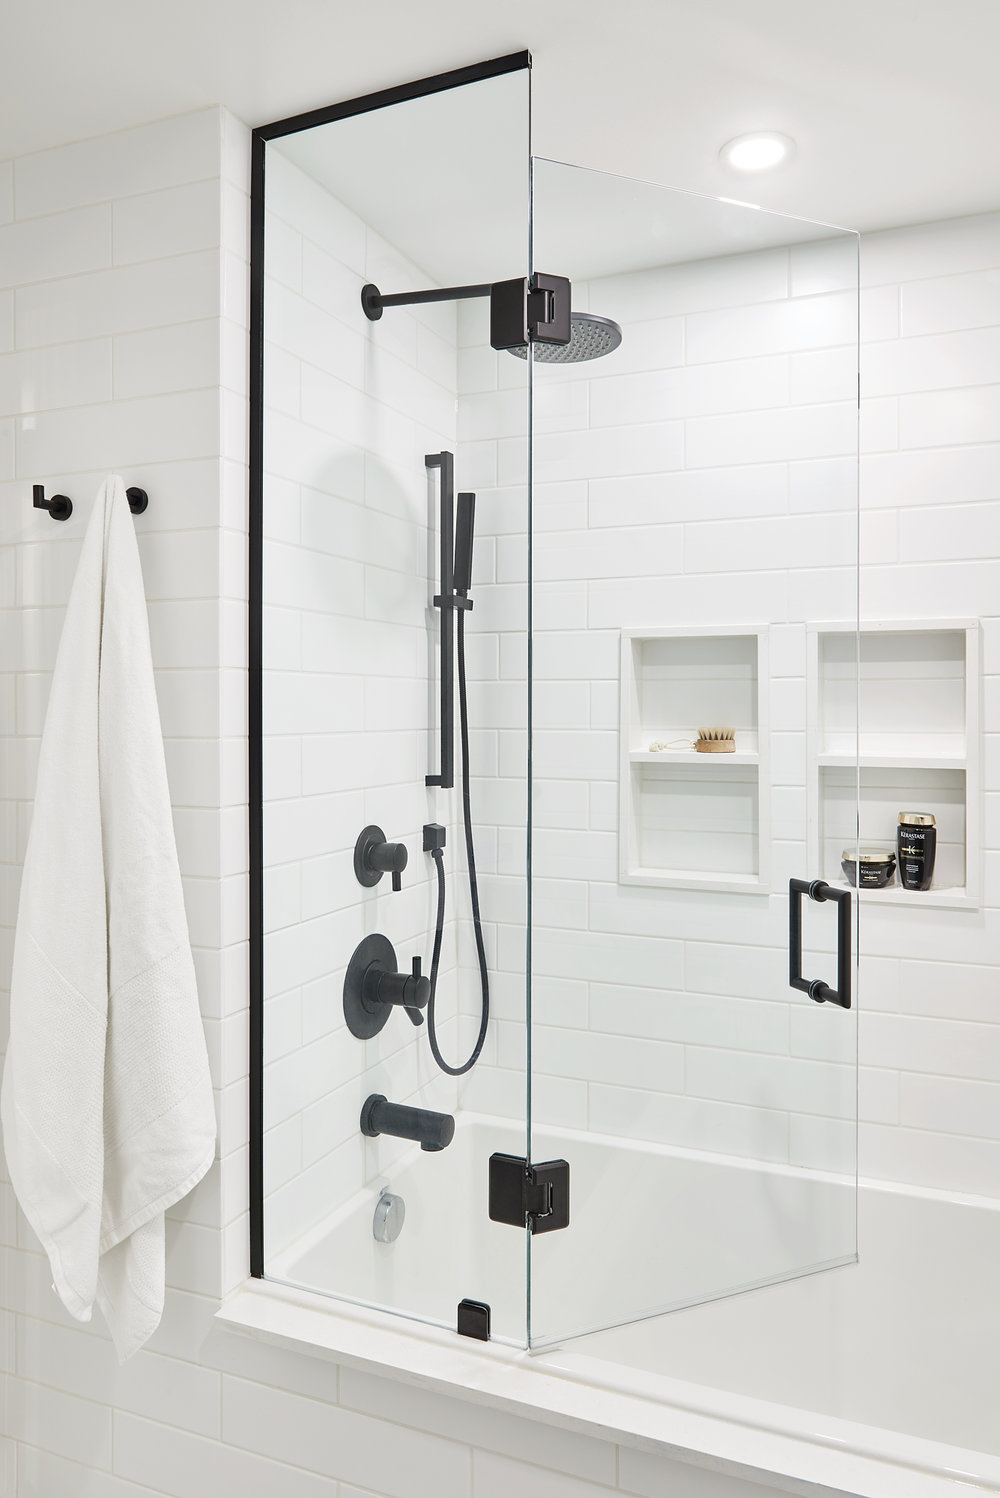 We're talking matte black hardware + finishes at hprallandco.com